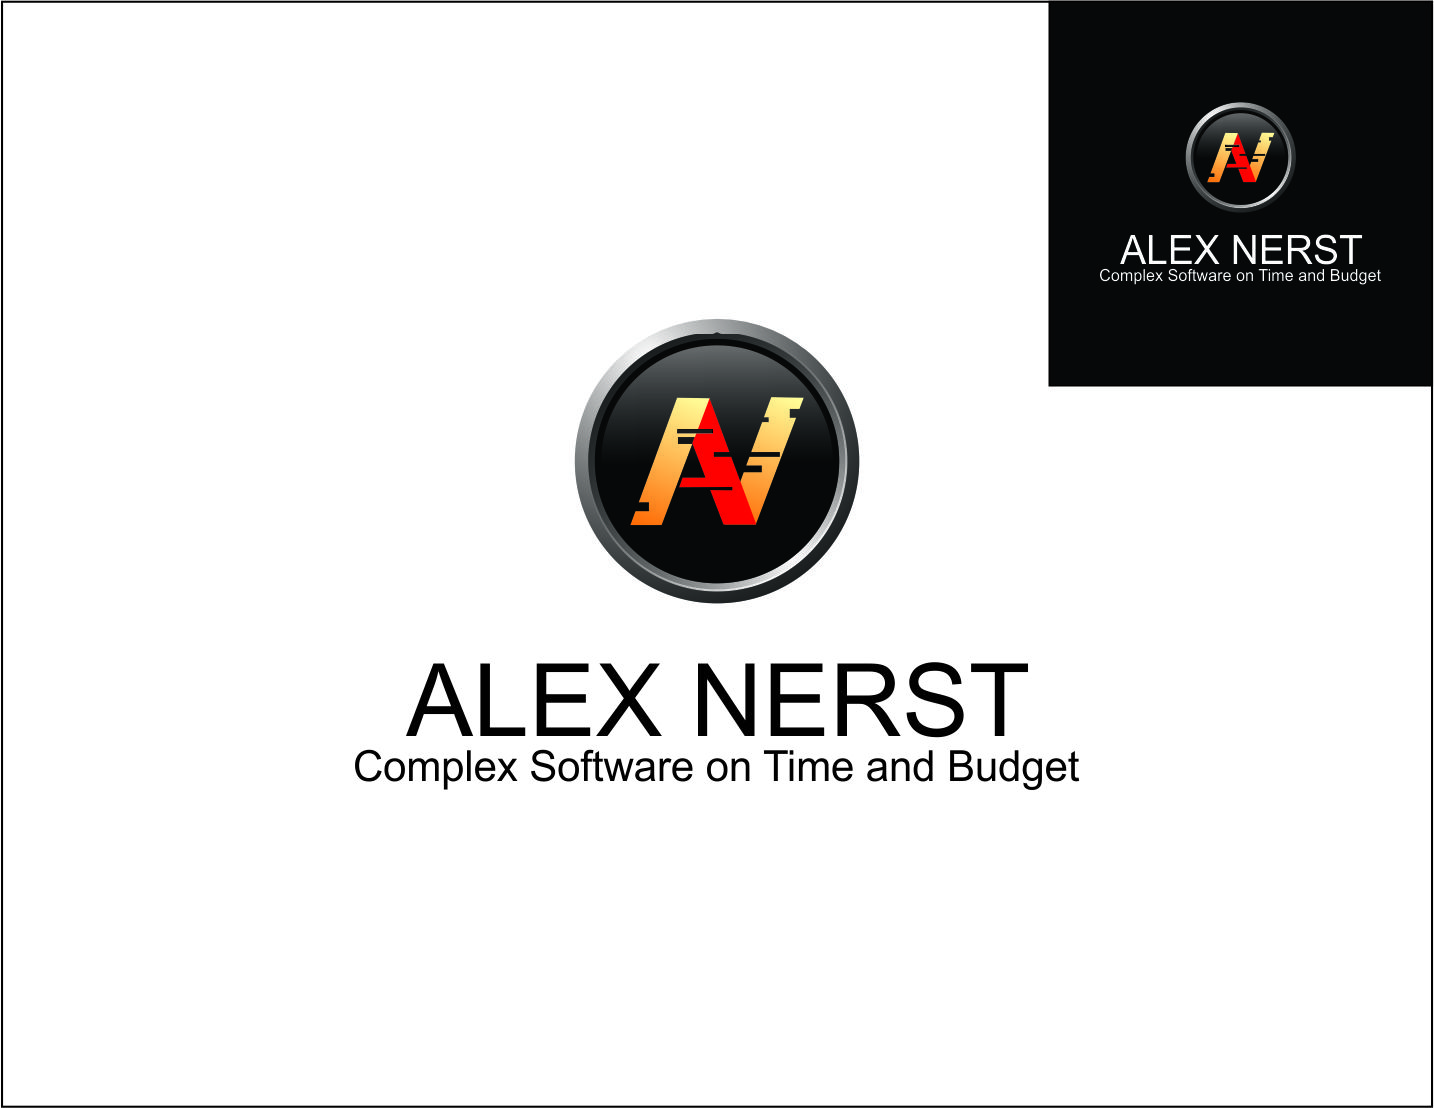 Logo Design by Agus Martoyo - Entry No. 29 in the Logo Design Contest Artistic Logo Design for Alex Nerst.